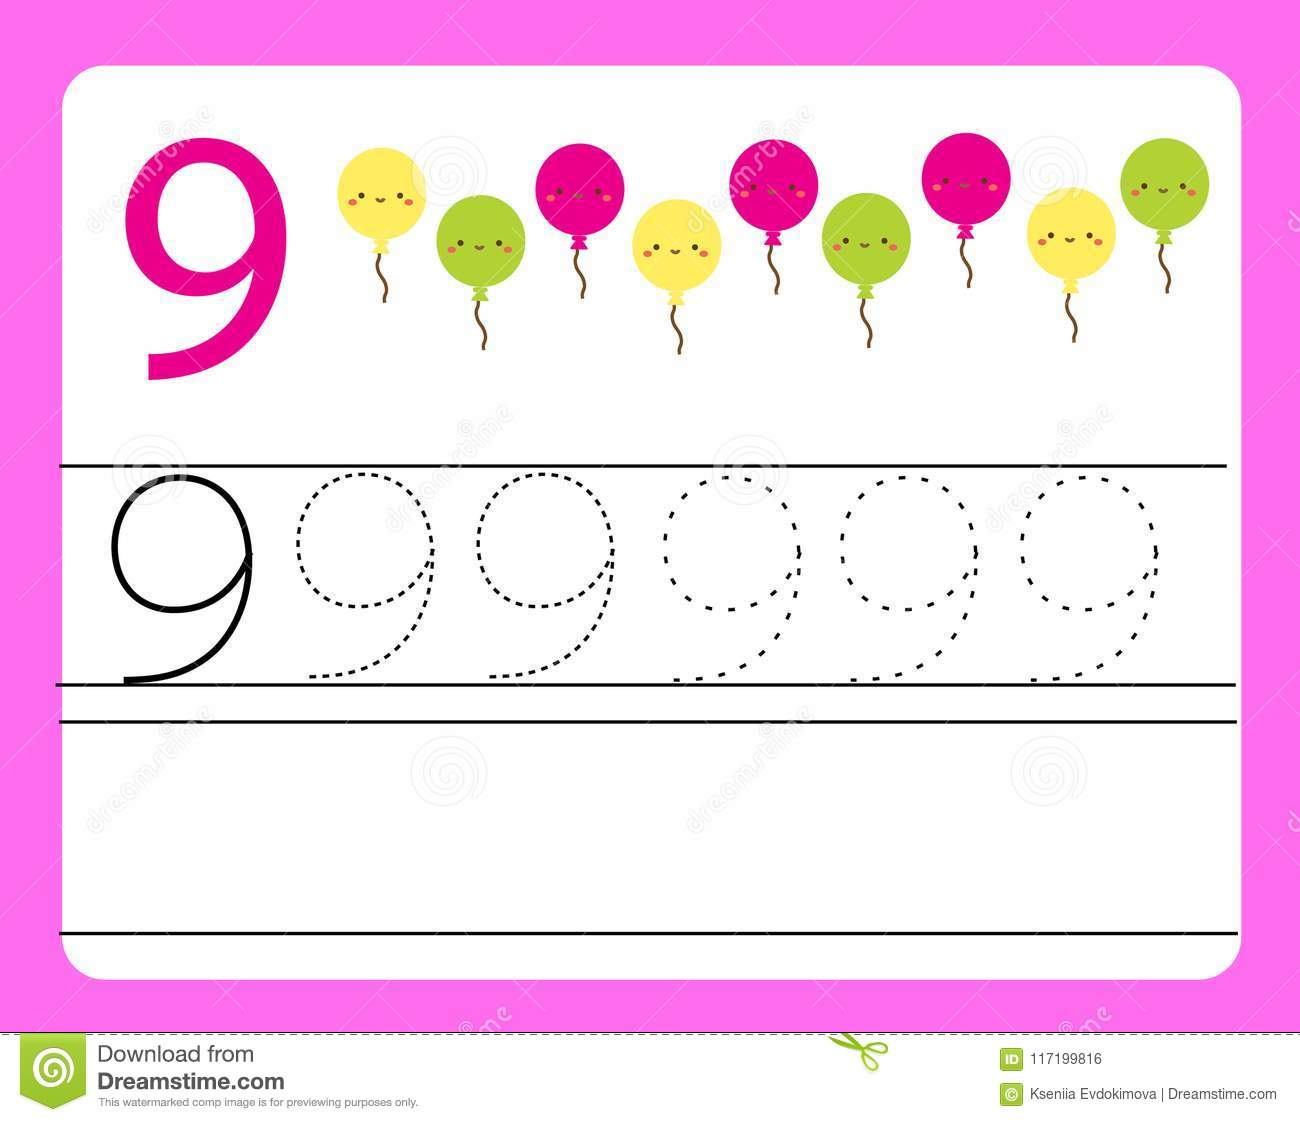 Handwriting Practice Learning Numbers With Cute Characters Number Nine Educational Printable Worksheet For Kids And Toddlers Wi Stock Vector Illustration Of Outline Lines 117199816